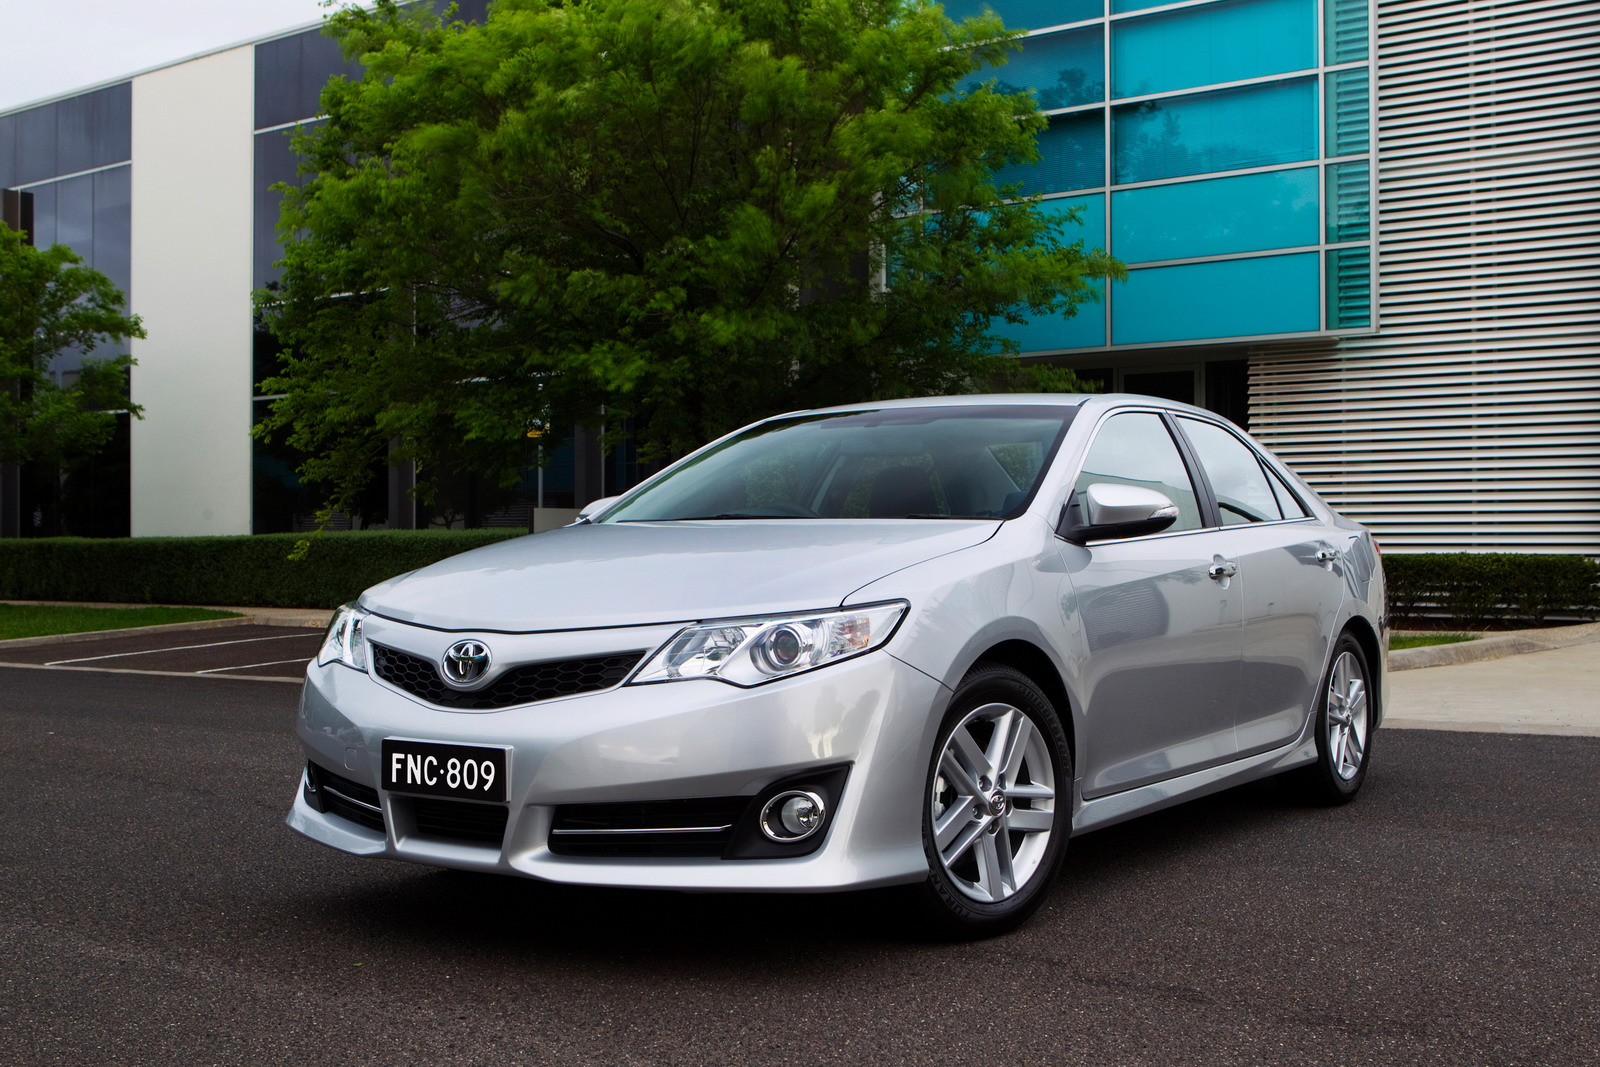 brand new toyota camry price in australia filter bensin grand avanza 2012 for unveiled autoevolution